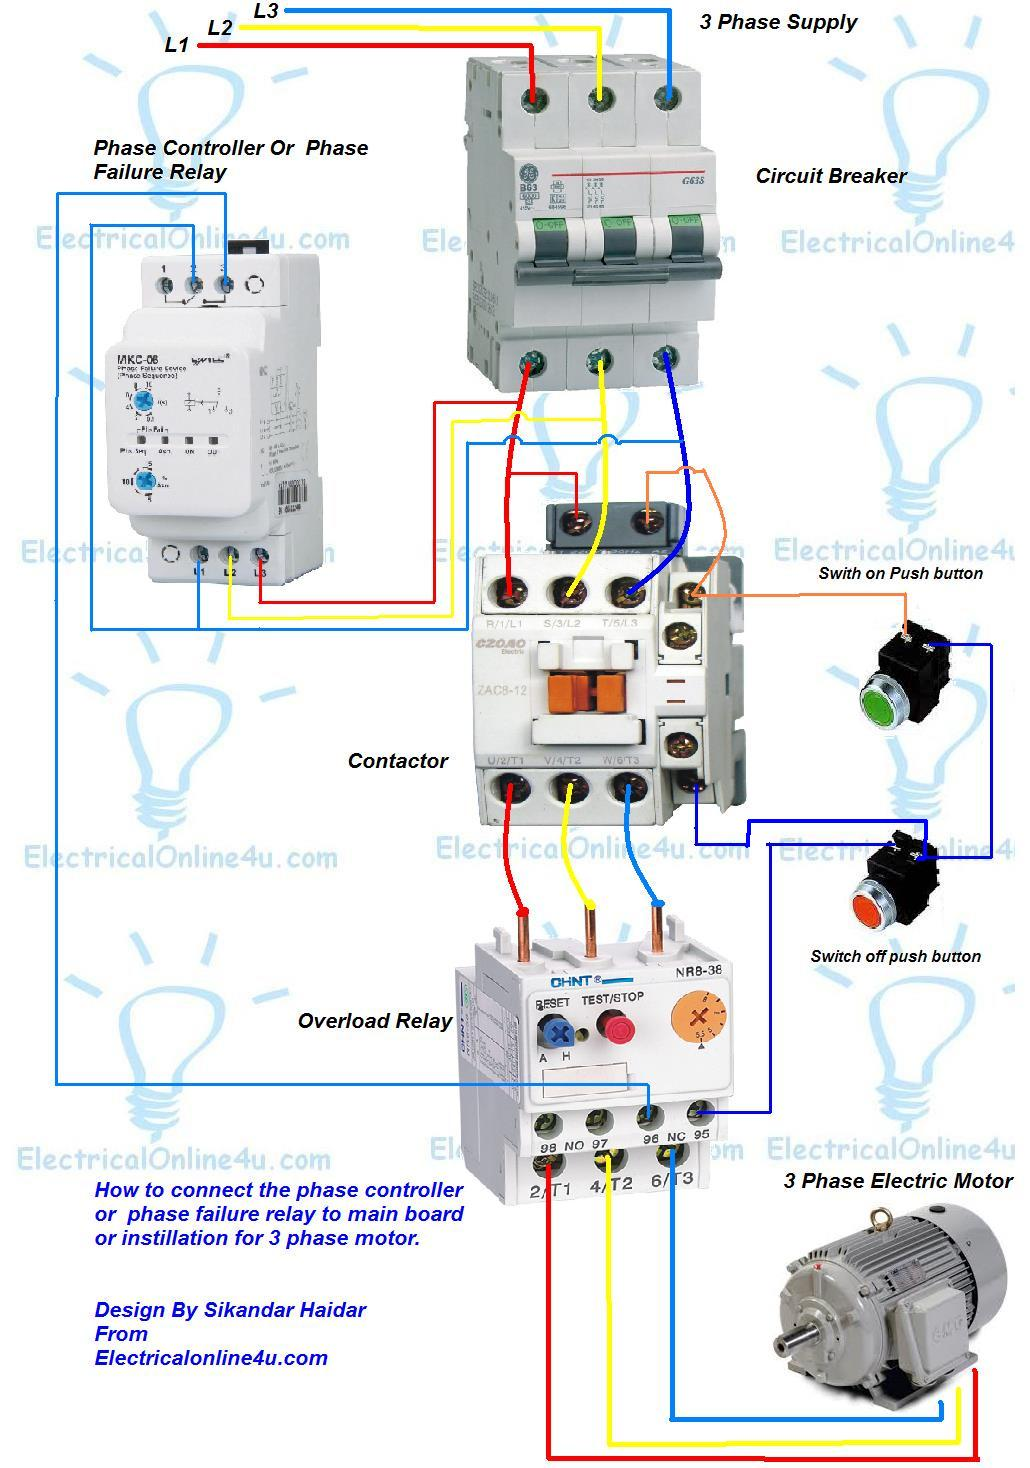 Phase%2Bfailure%2Brelay%2B %2Bphase%2Bcontroller%2Binstilaion%2Bin%2B3%2Bphase%2BMain%2Bboard%2Bor%2Bfor%2B3%2Bphase%2Bmotor phase controller wiring phase failure relay diagram electrical relay wiring diagram at creativeand.co